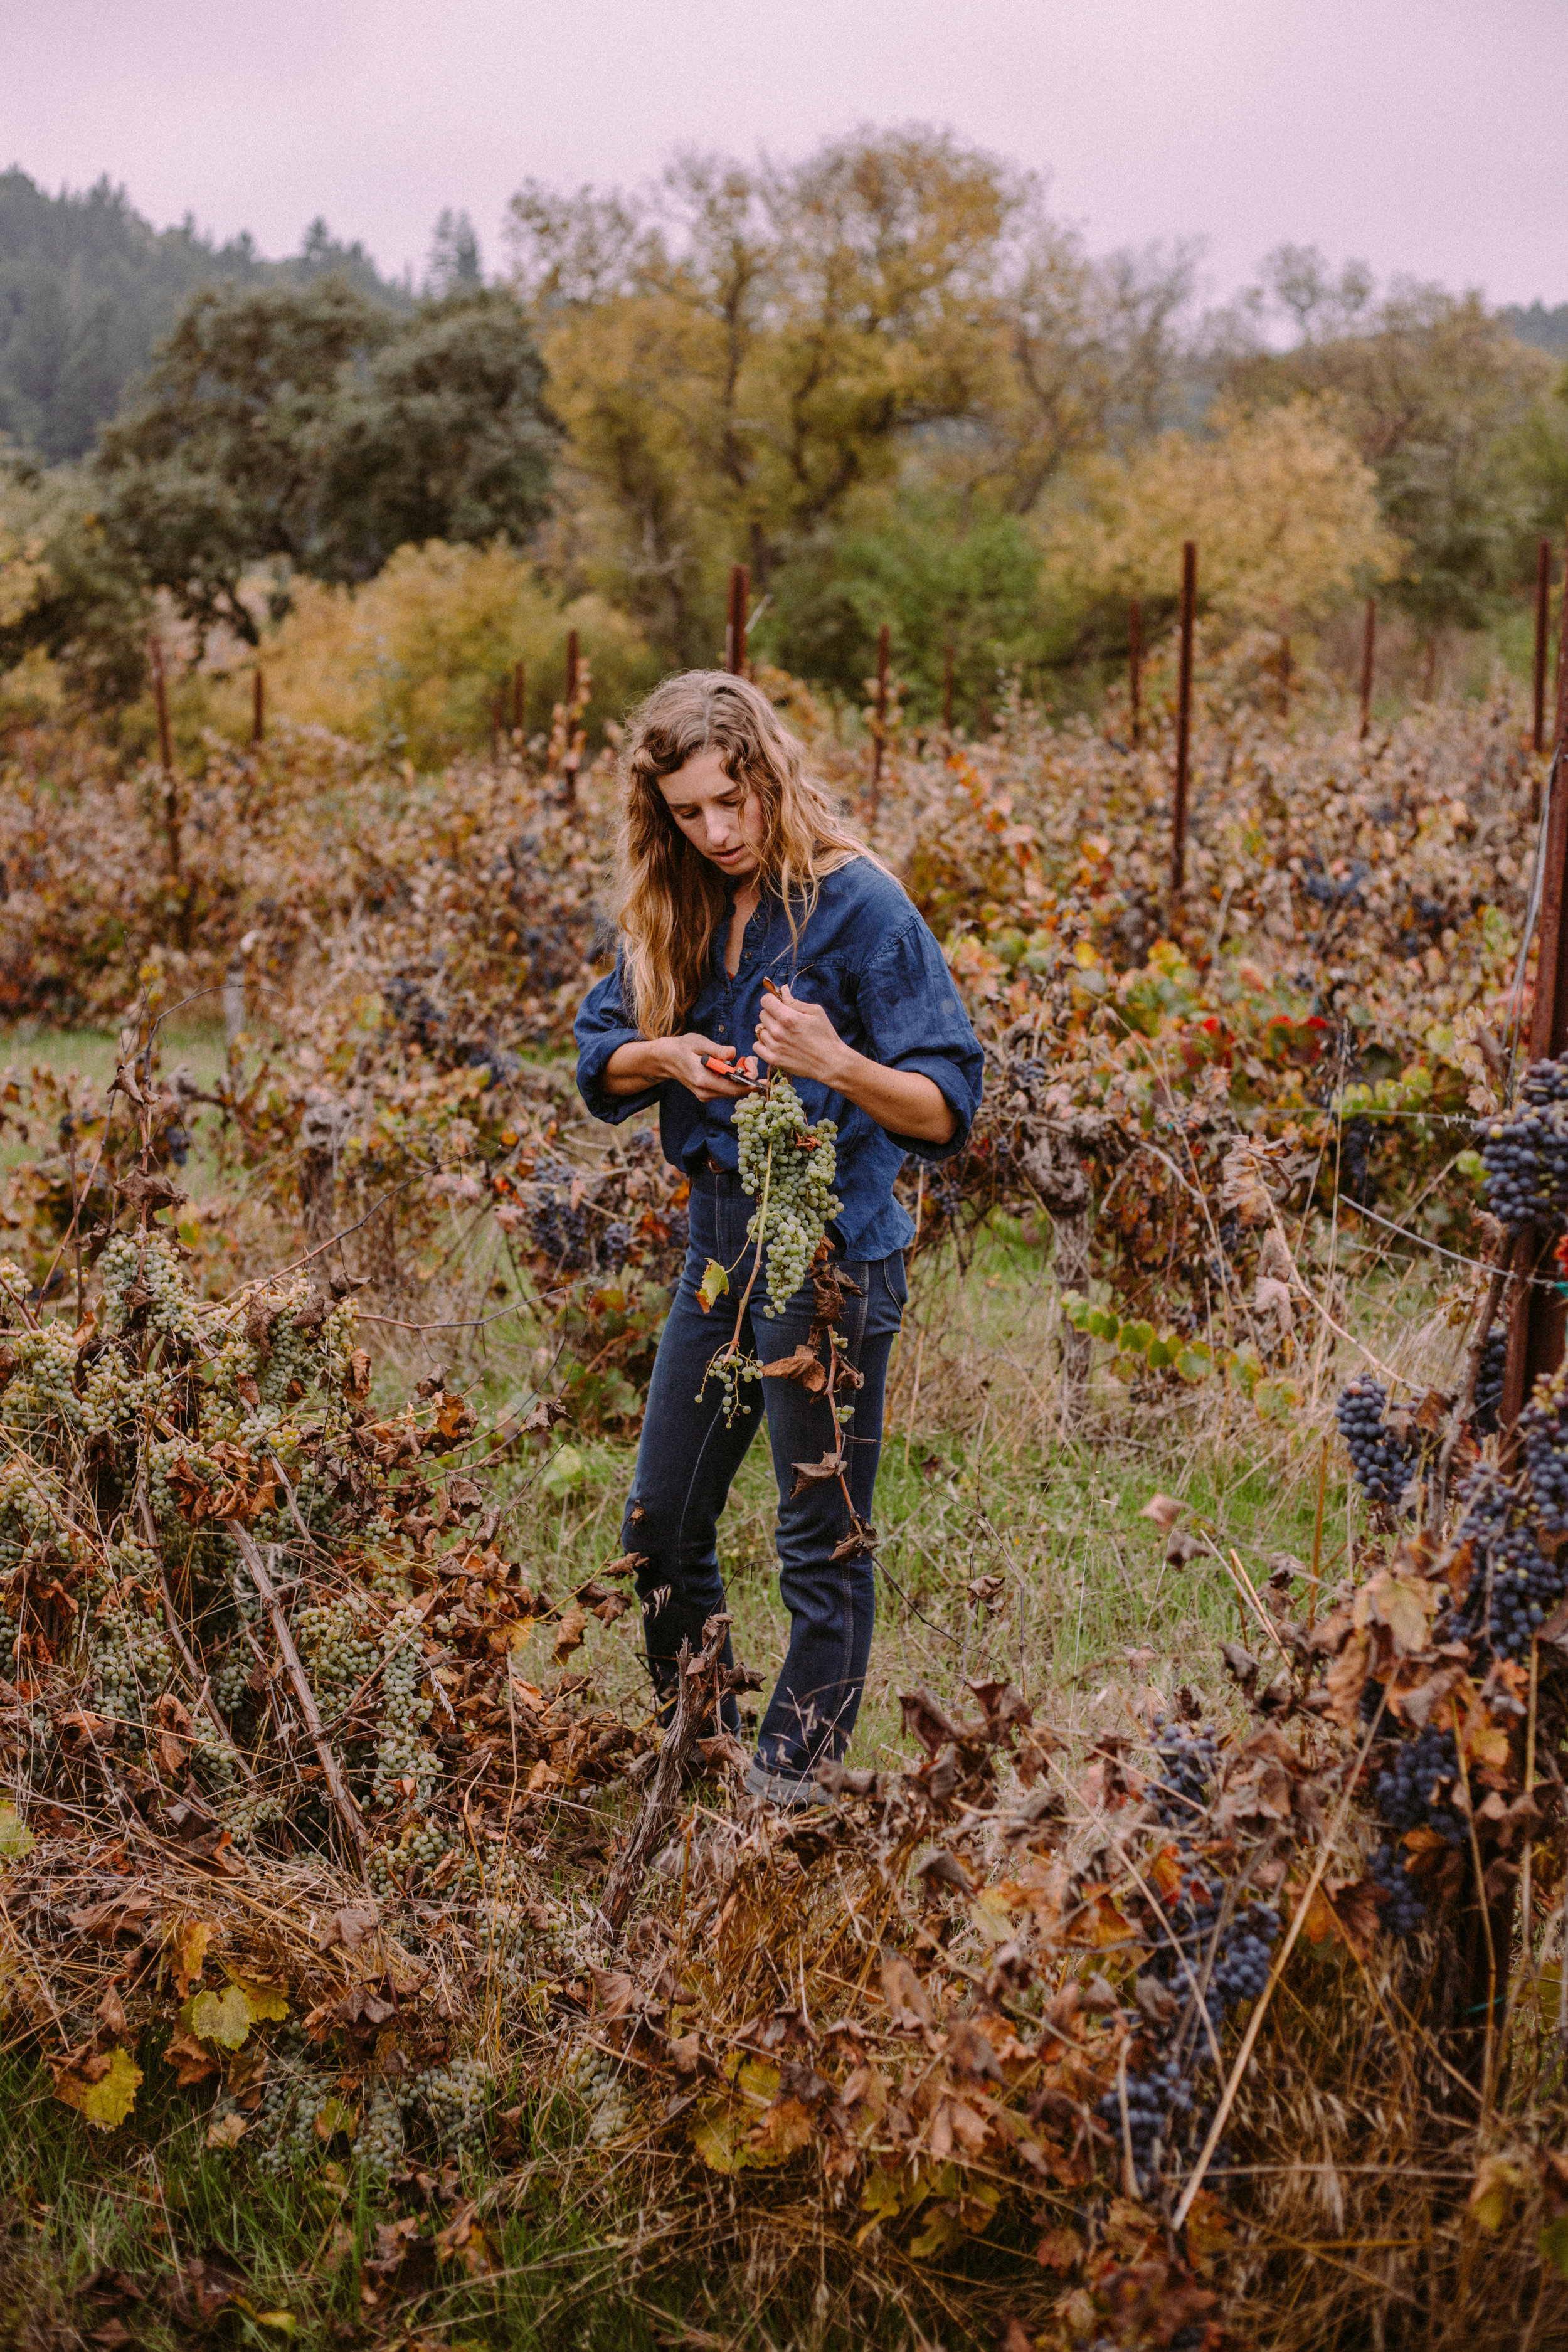 Heather trimming up grapes at Rowan Farm to use in lush table scape designs for Venn Floral. Photographed by Collin Morrow.